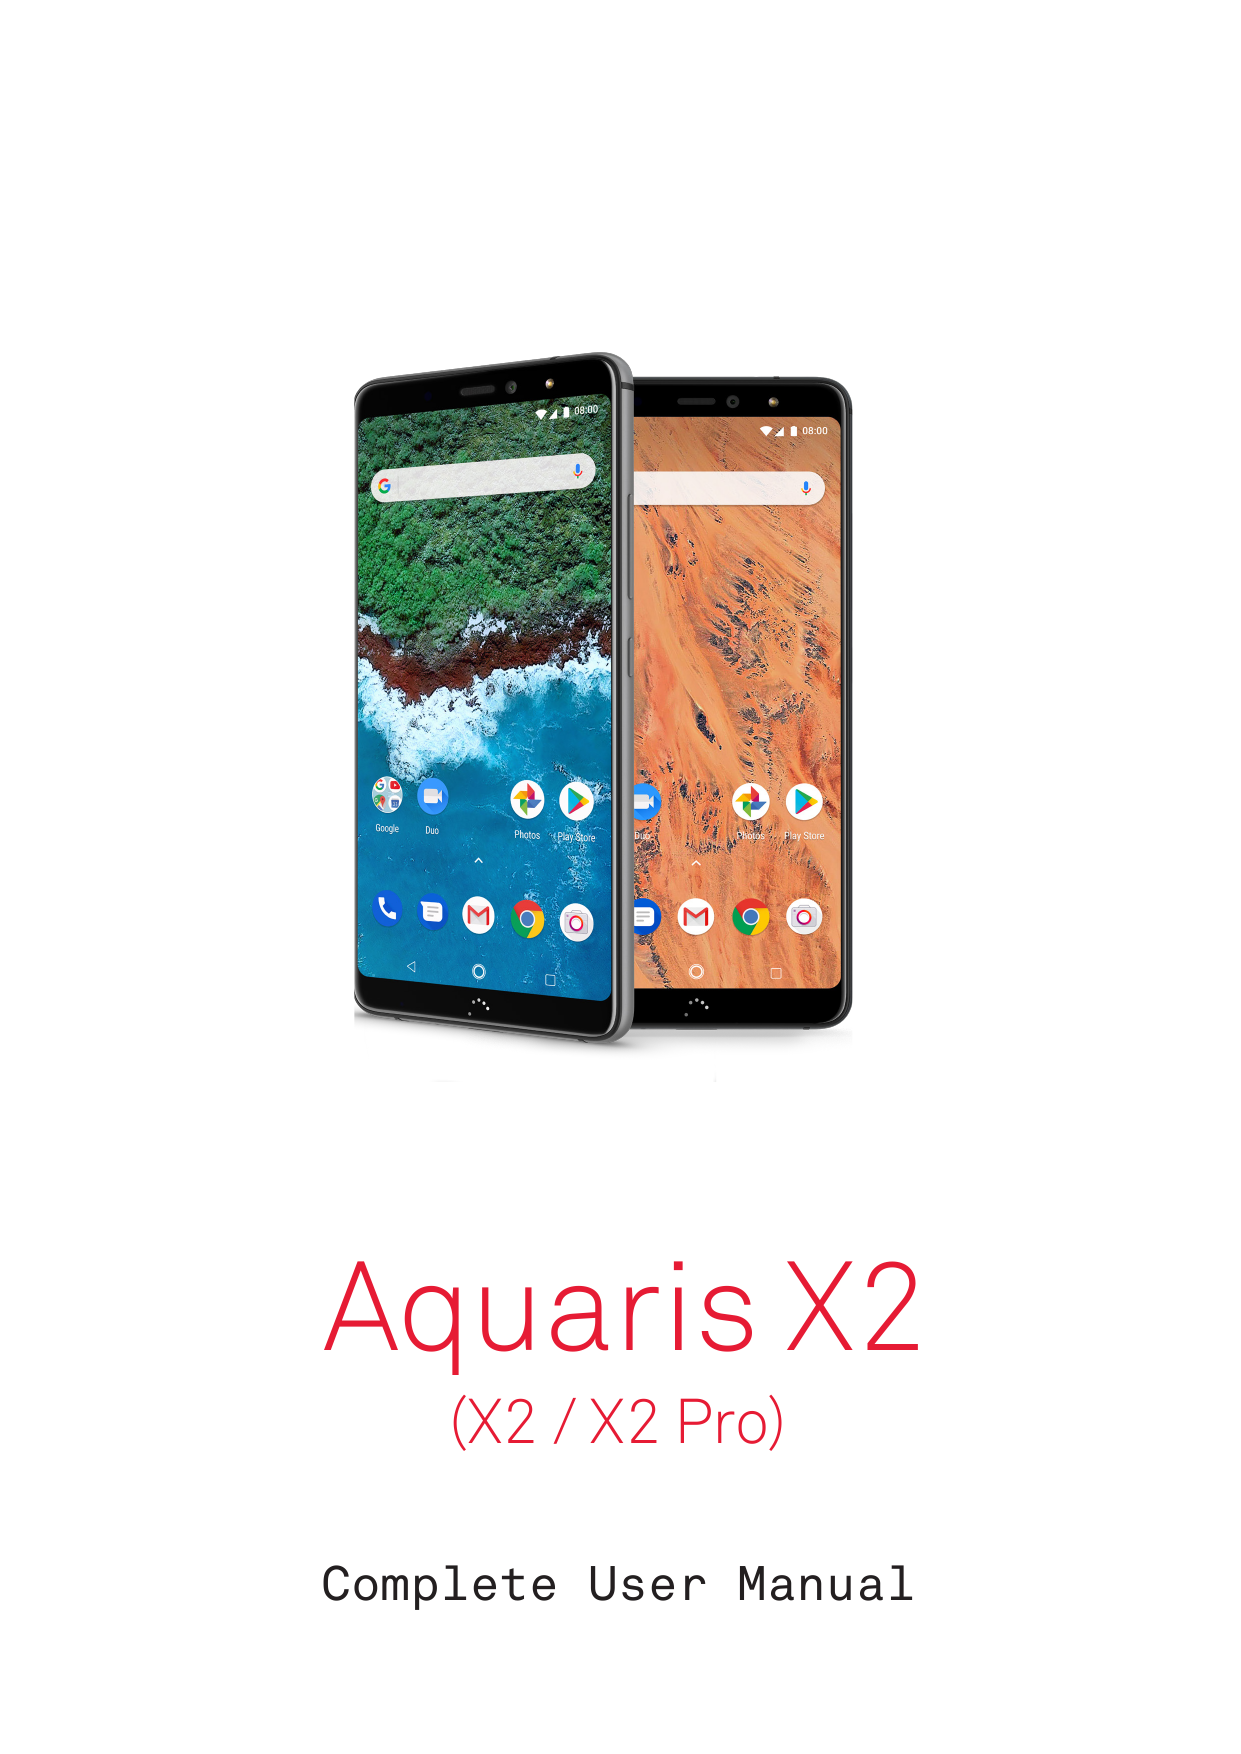 Manual - BQ Aquaris X2 Pro - Android 8 1 - Device Guides